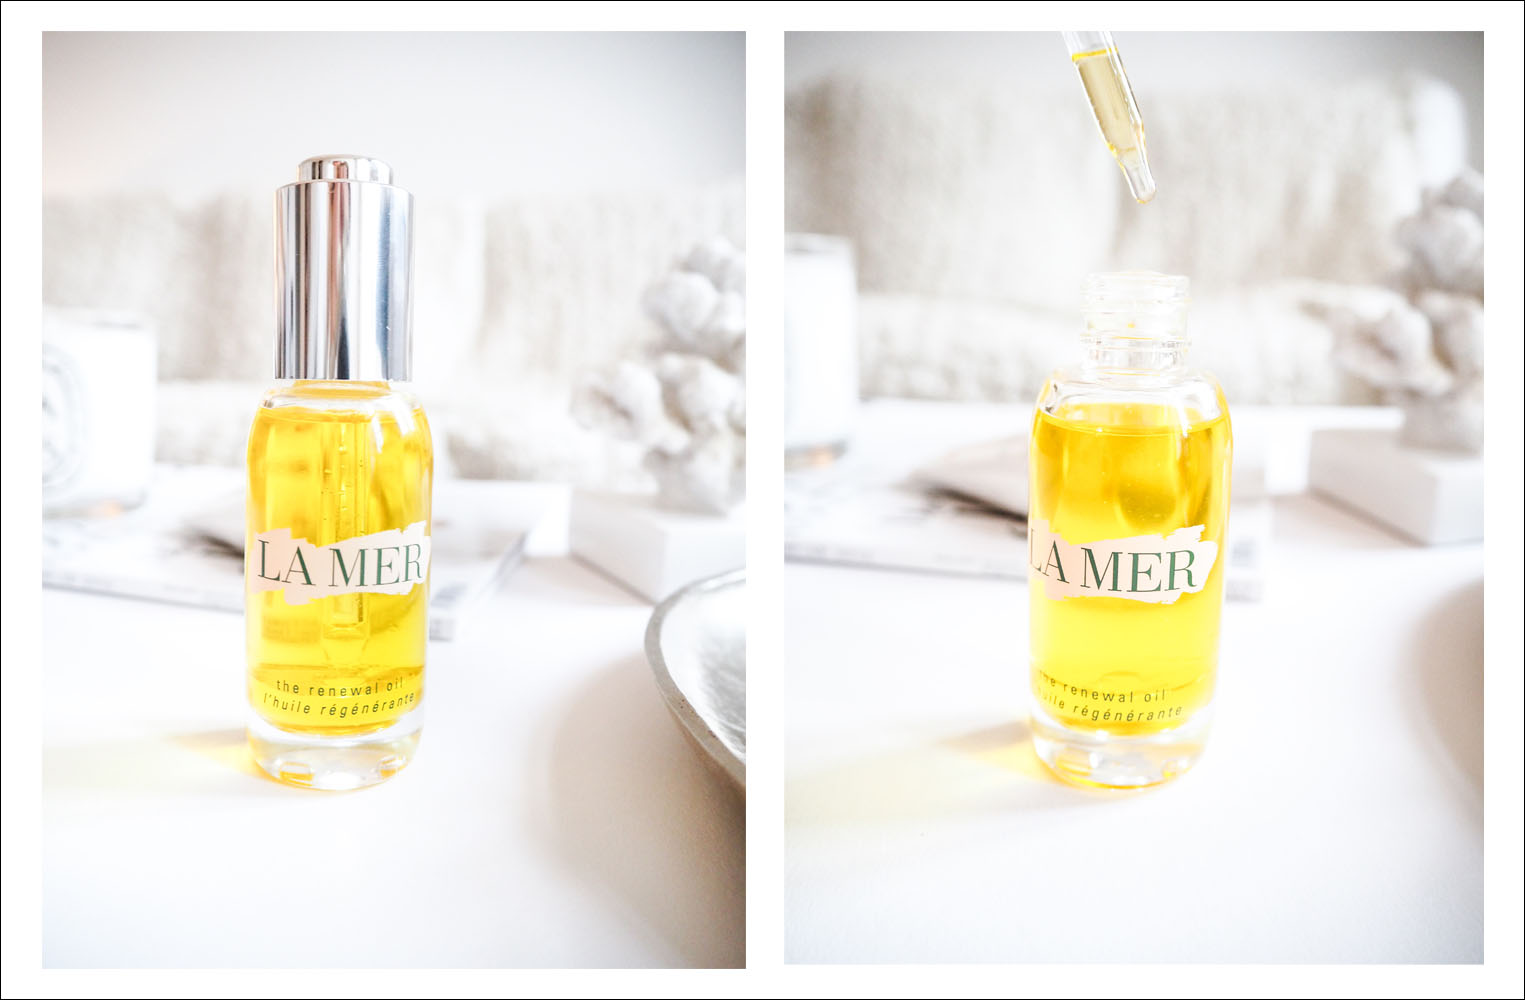 La Mer The Renewal Oil